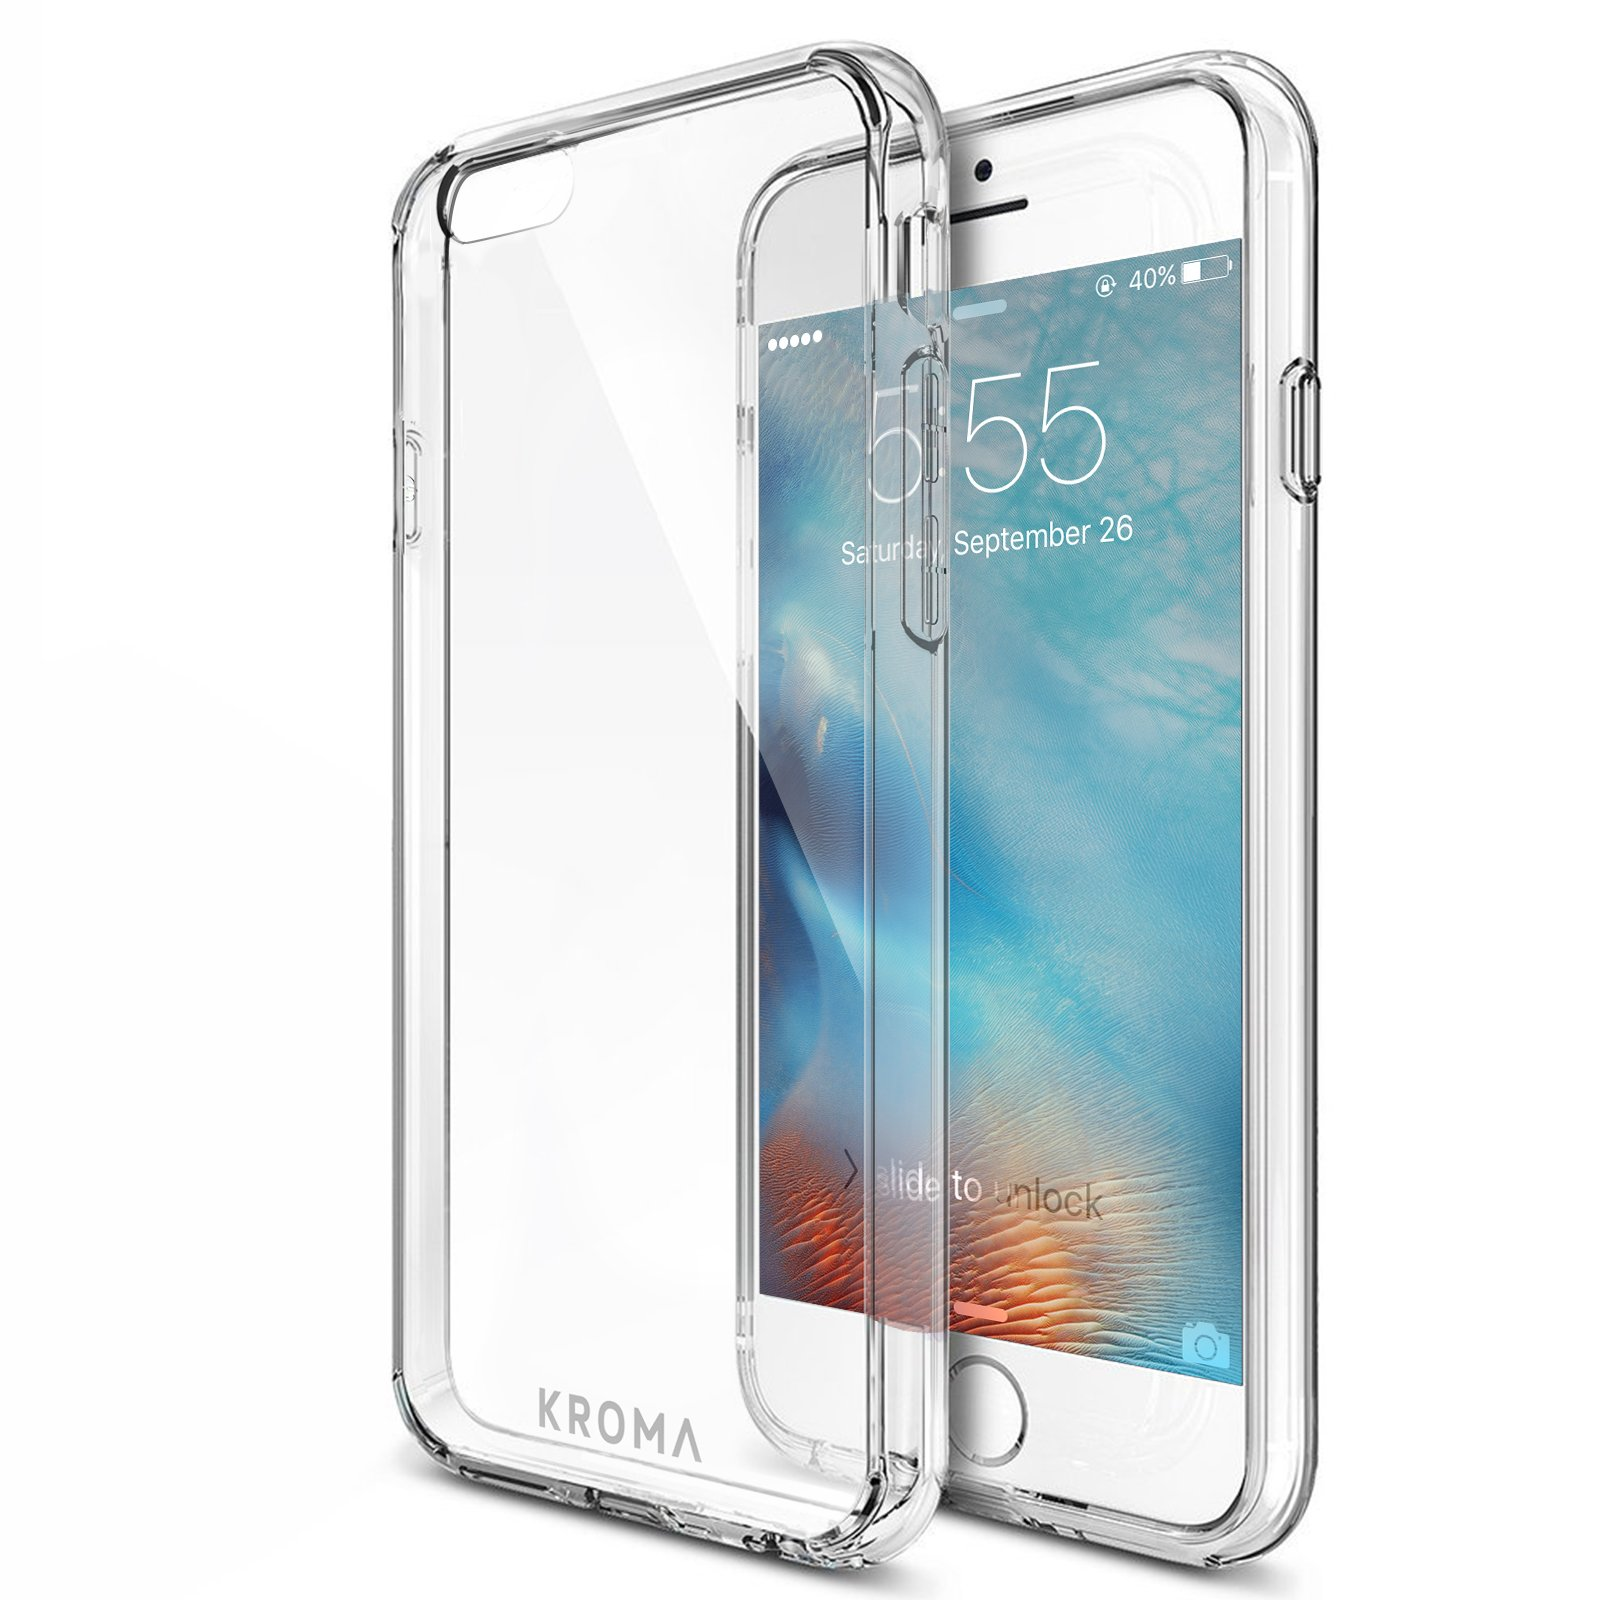 Iphone 6S Case Kroma? [Primatic Series] Crystal Clear Iphone 6 And 6S Case 99.. 10